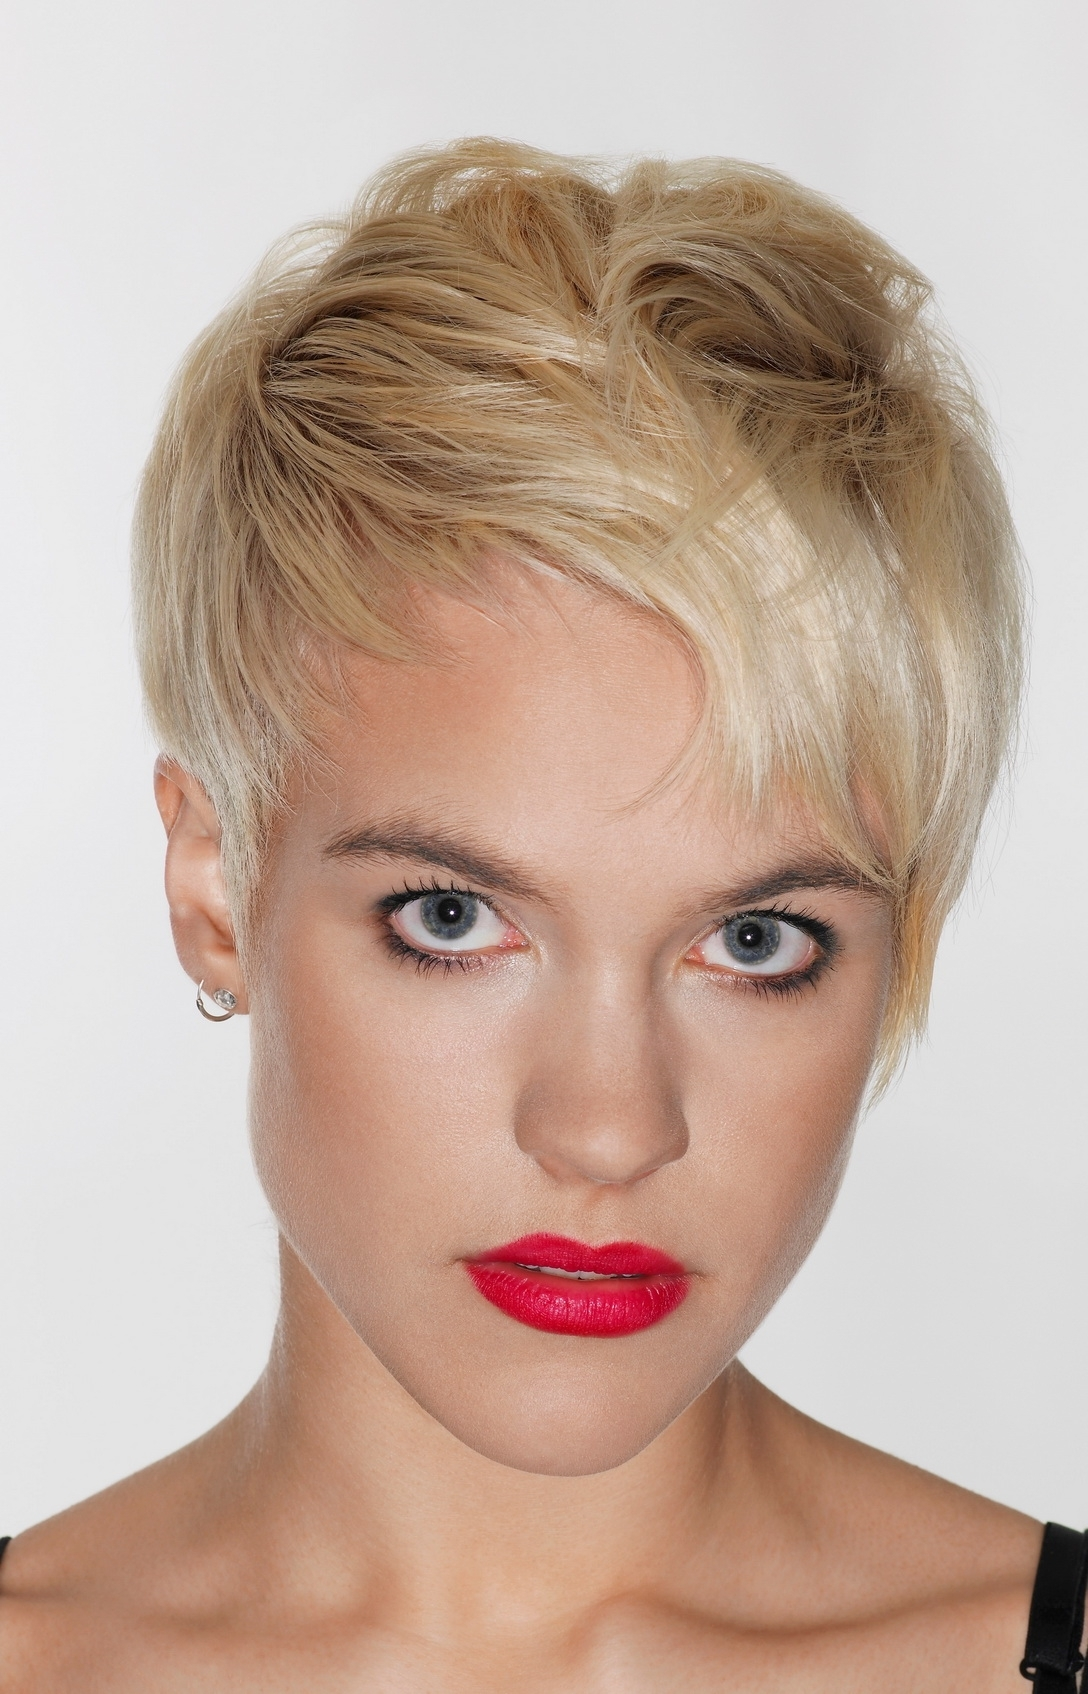 Layered Pixie Haircut For Inverted Triangle And Heart Faces 2018 With Regard To 2018 Pixie Hairstyles For Heart Shaped Faces (View 10 of 15)